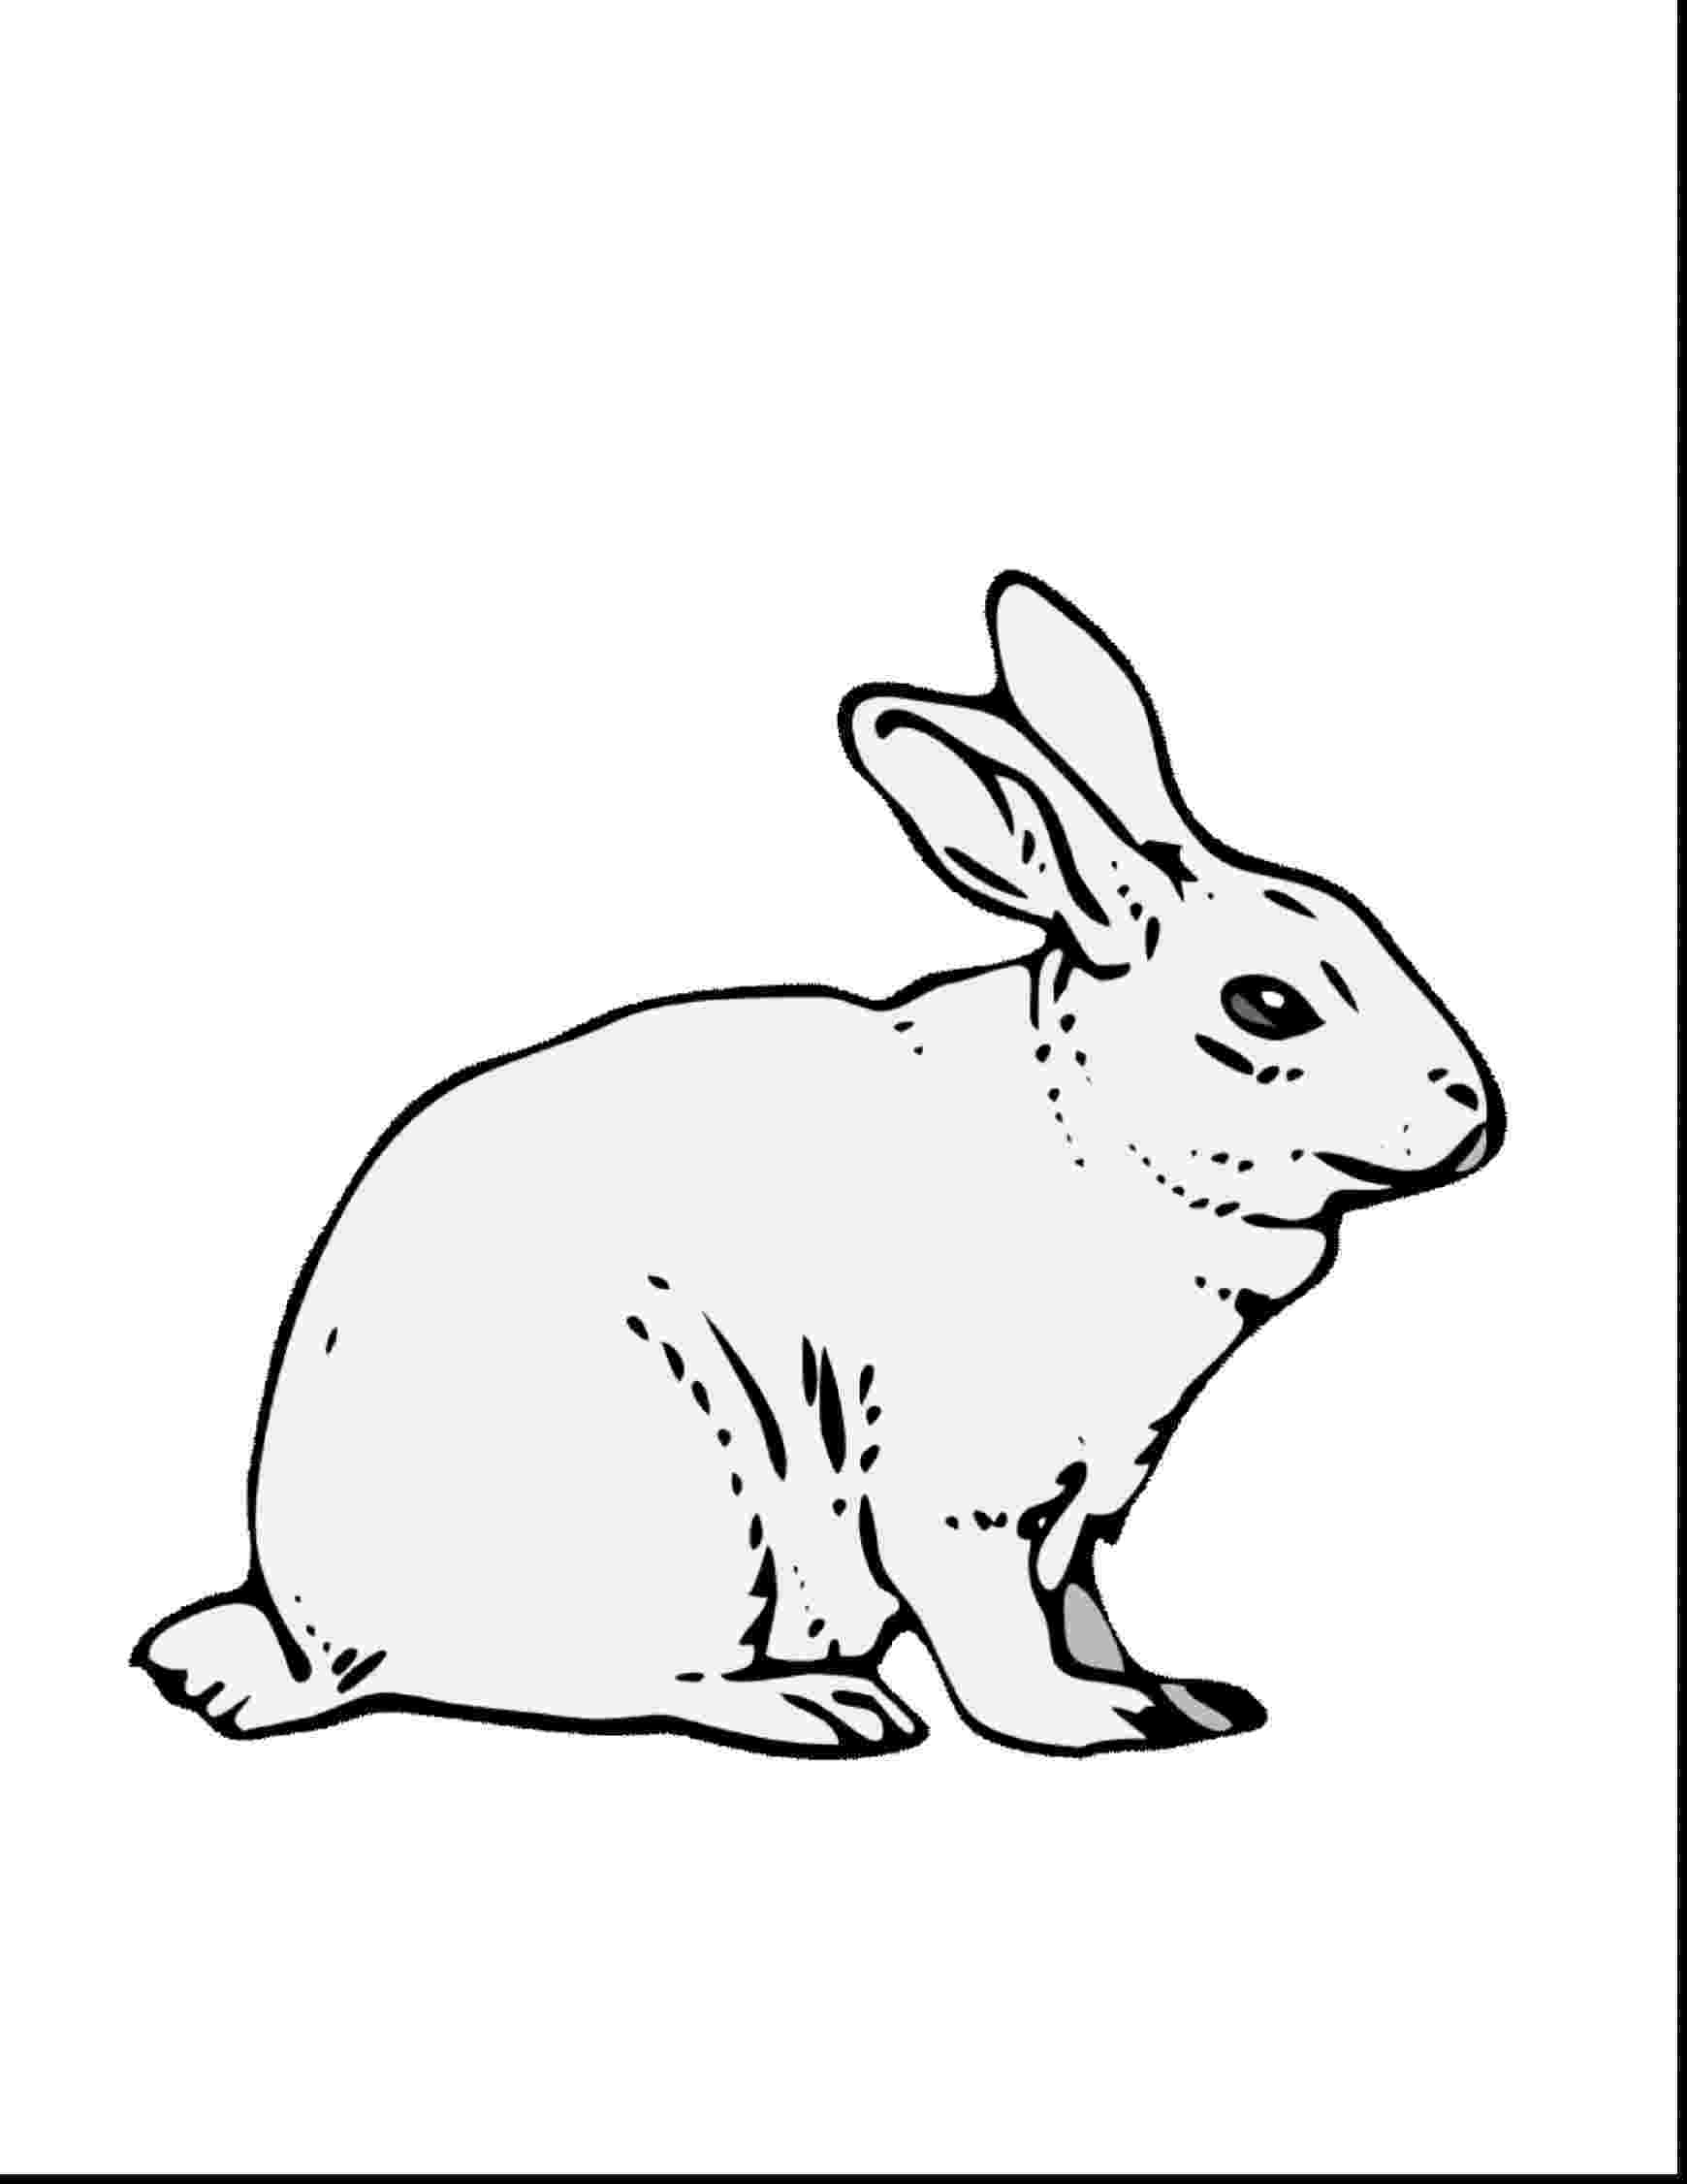 rabbit coloring pictures the best free rabbit drawing images download from 2722 pictures coloring rabbit